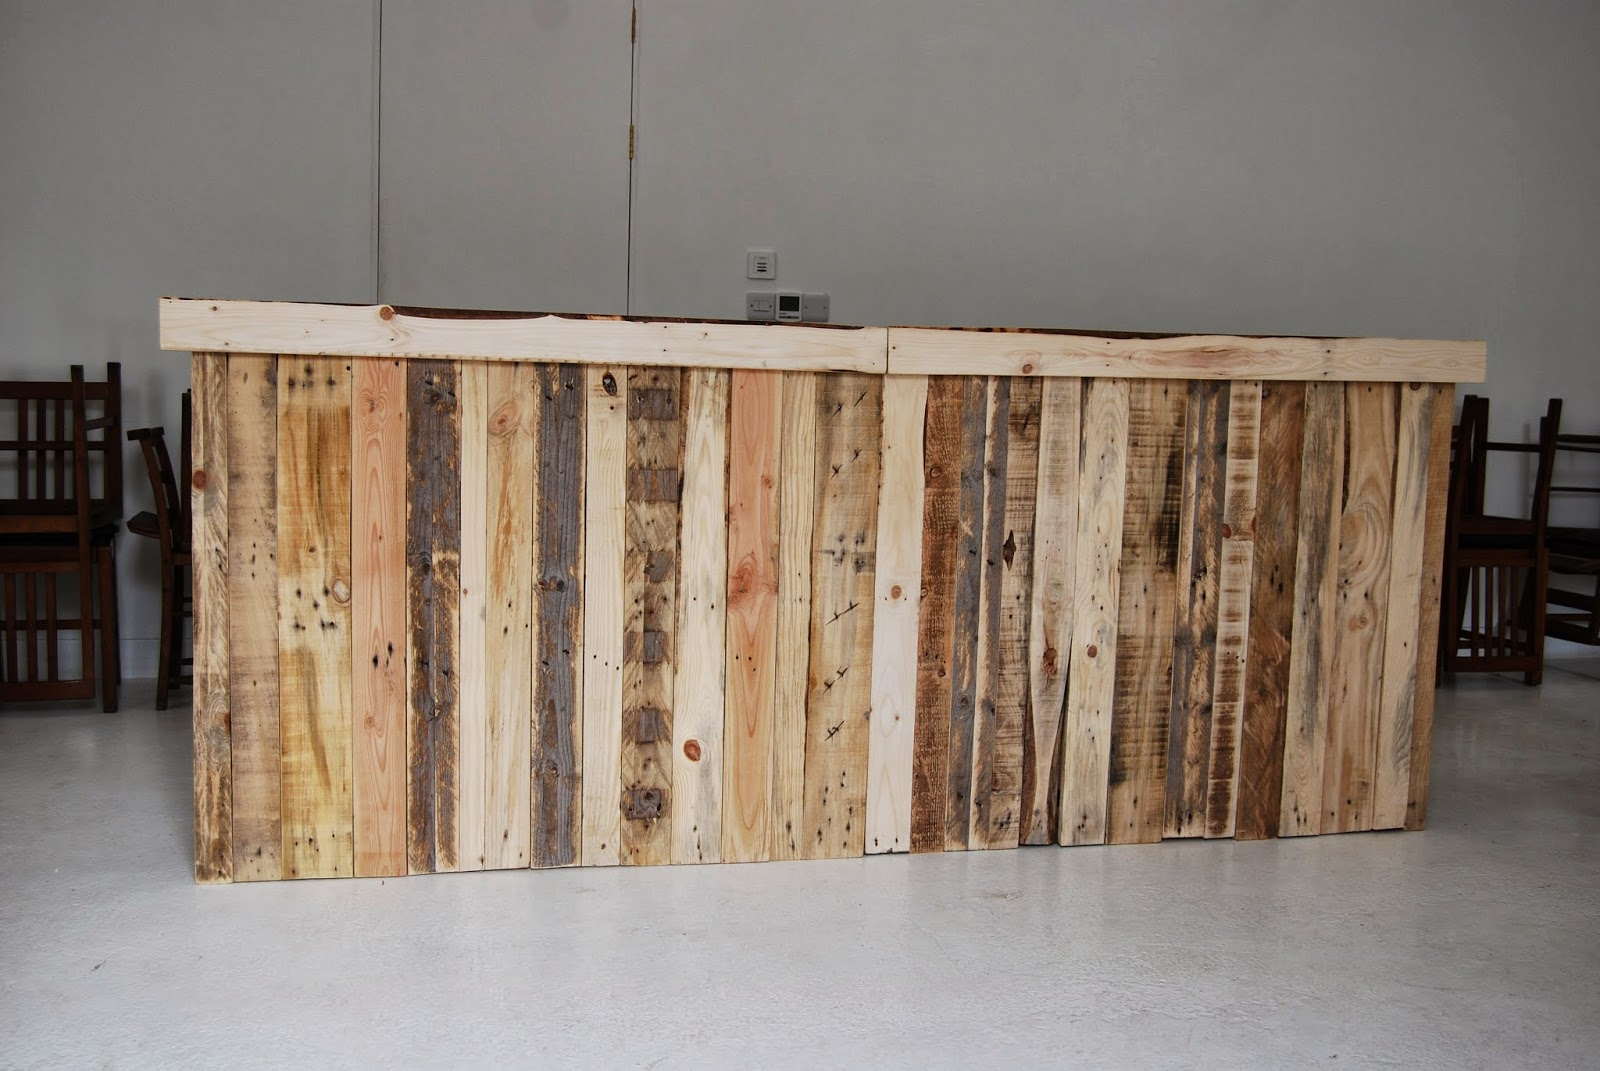 I Upcycle Pallets And Other Salvage And Create Furniture, Hen Houses,  Sculptures Etc Etc : 2014